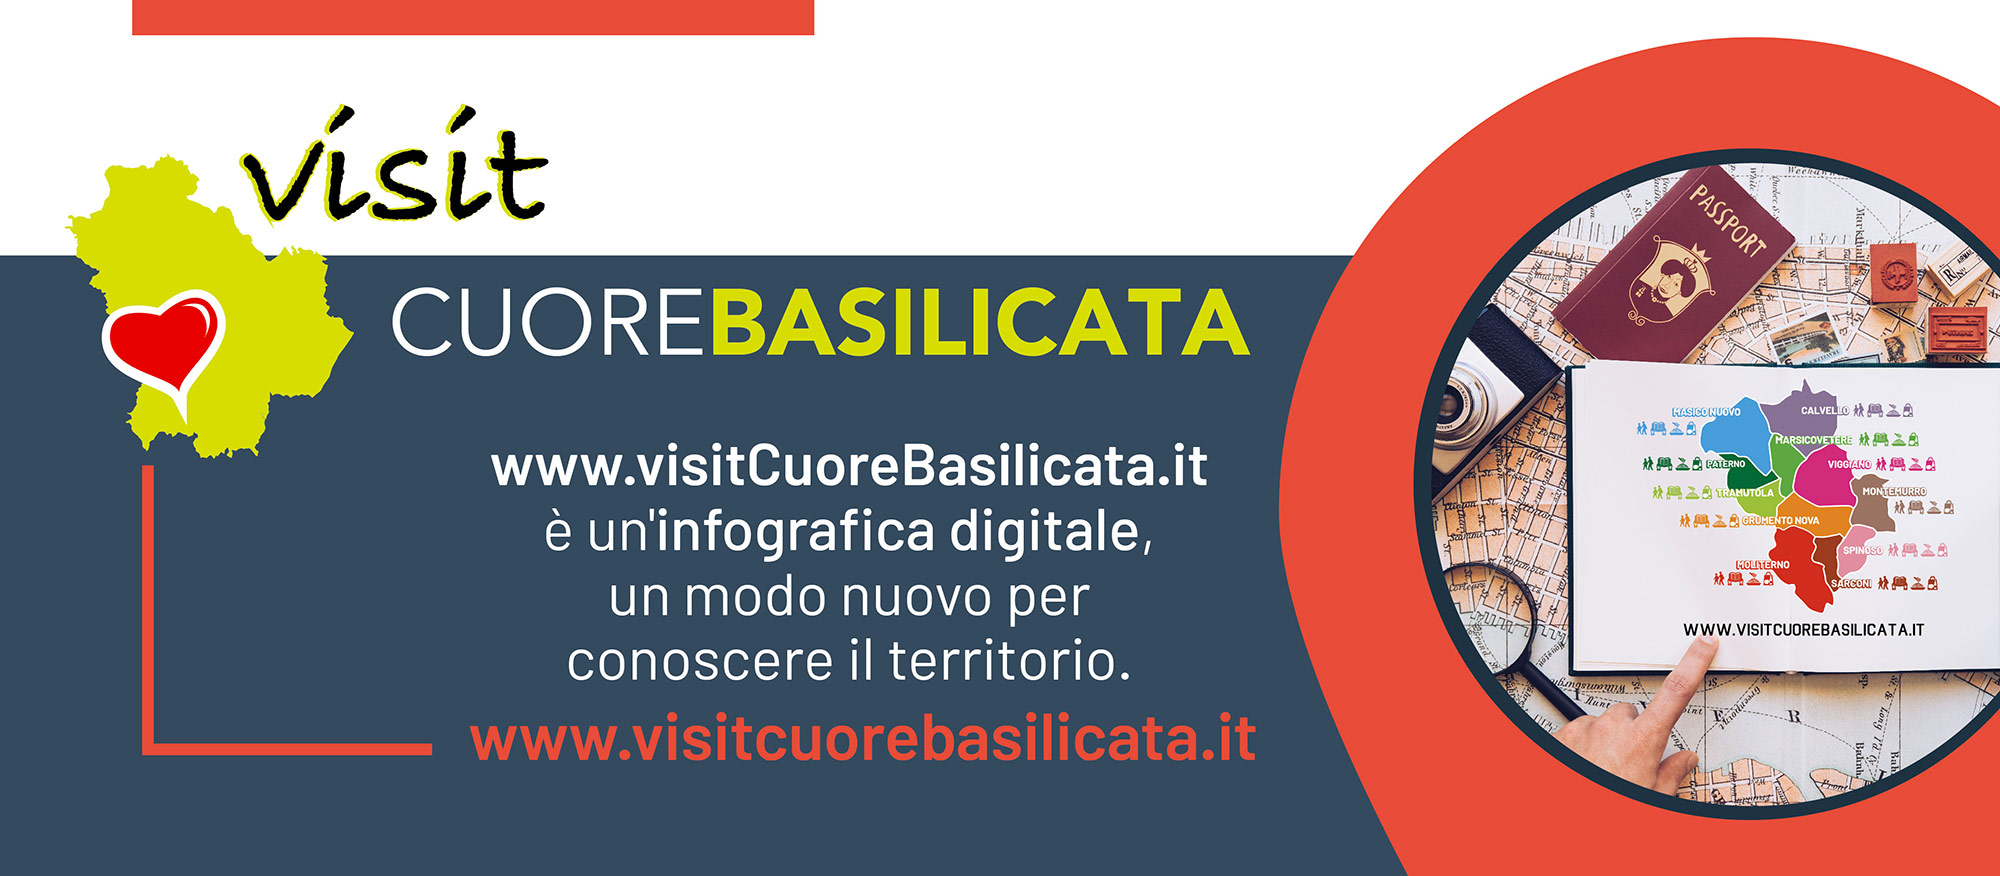 https://www.cuorebasilicata.it/wp-content/uploads/2020/07/Banner-Visit.jpg